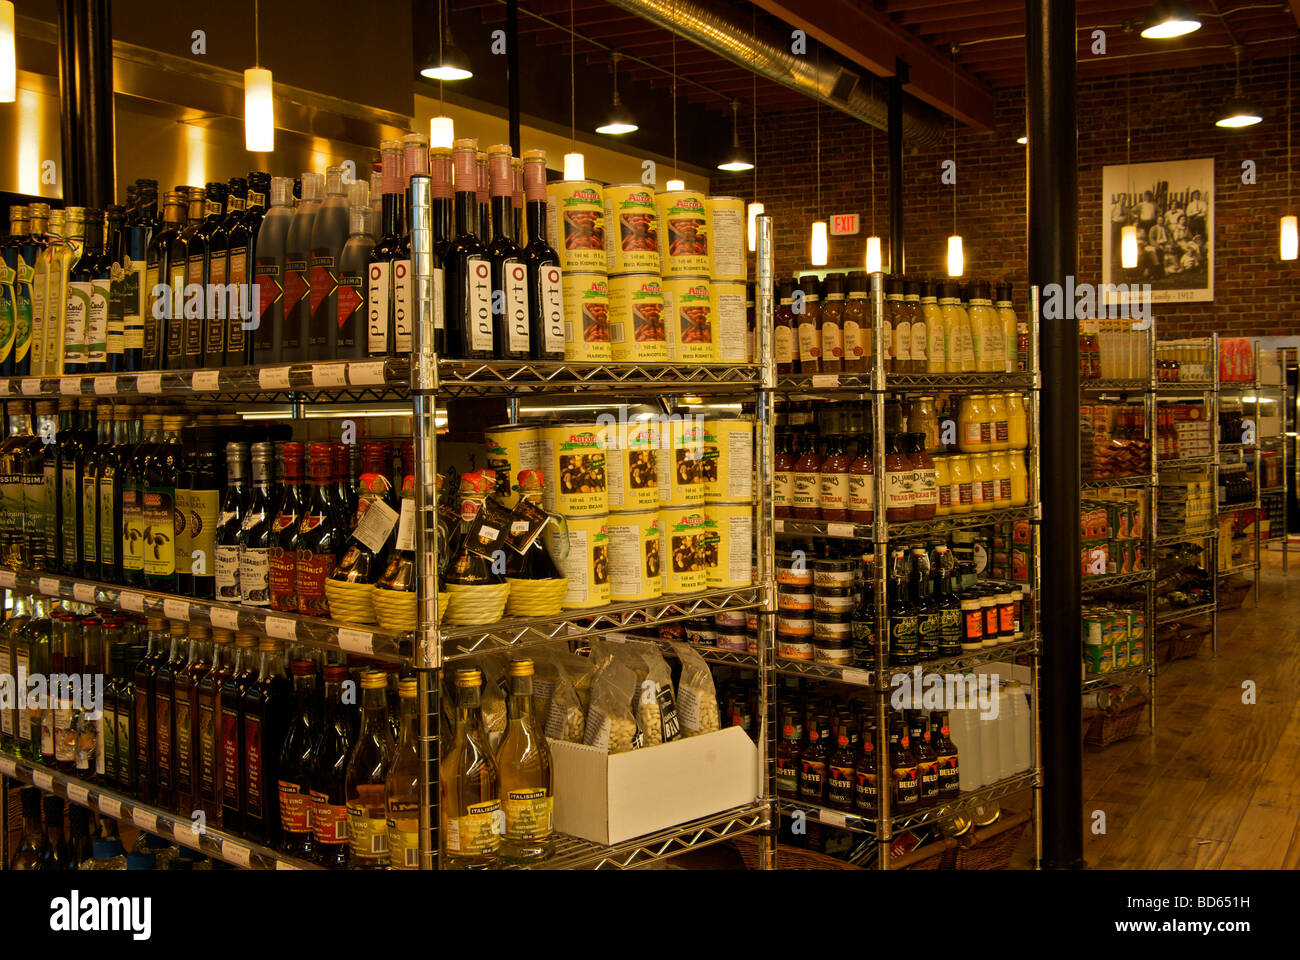 Aisle Display Grocery Stock Photos & Aisle Display Grocery Stock ...